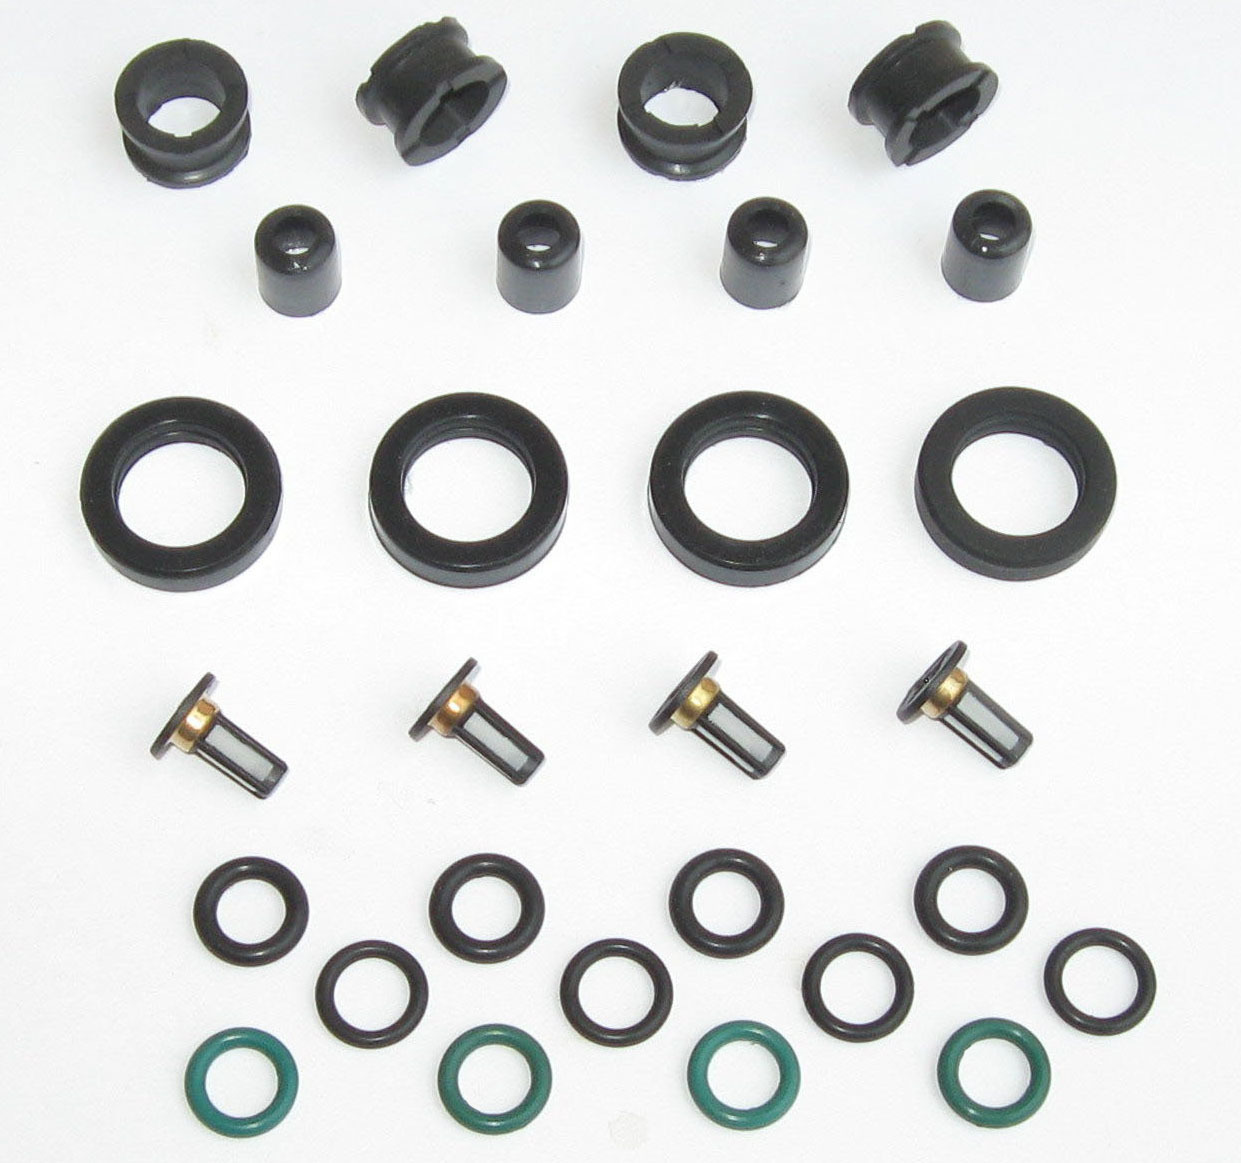 The Injector Shop 4-514 Fuel Injector Rebuild Seal Kit for Honda Acura